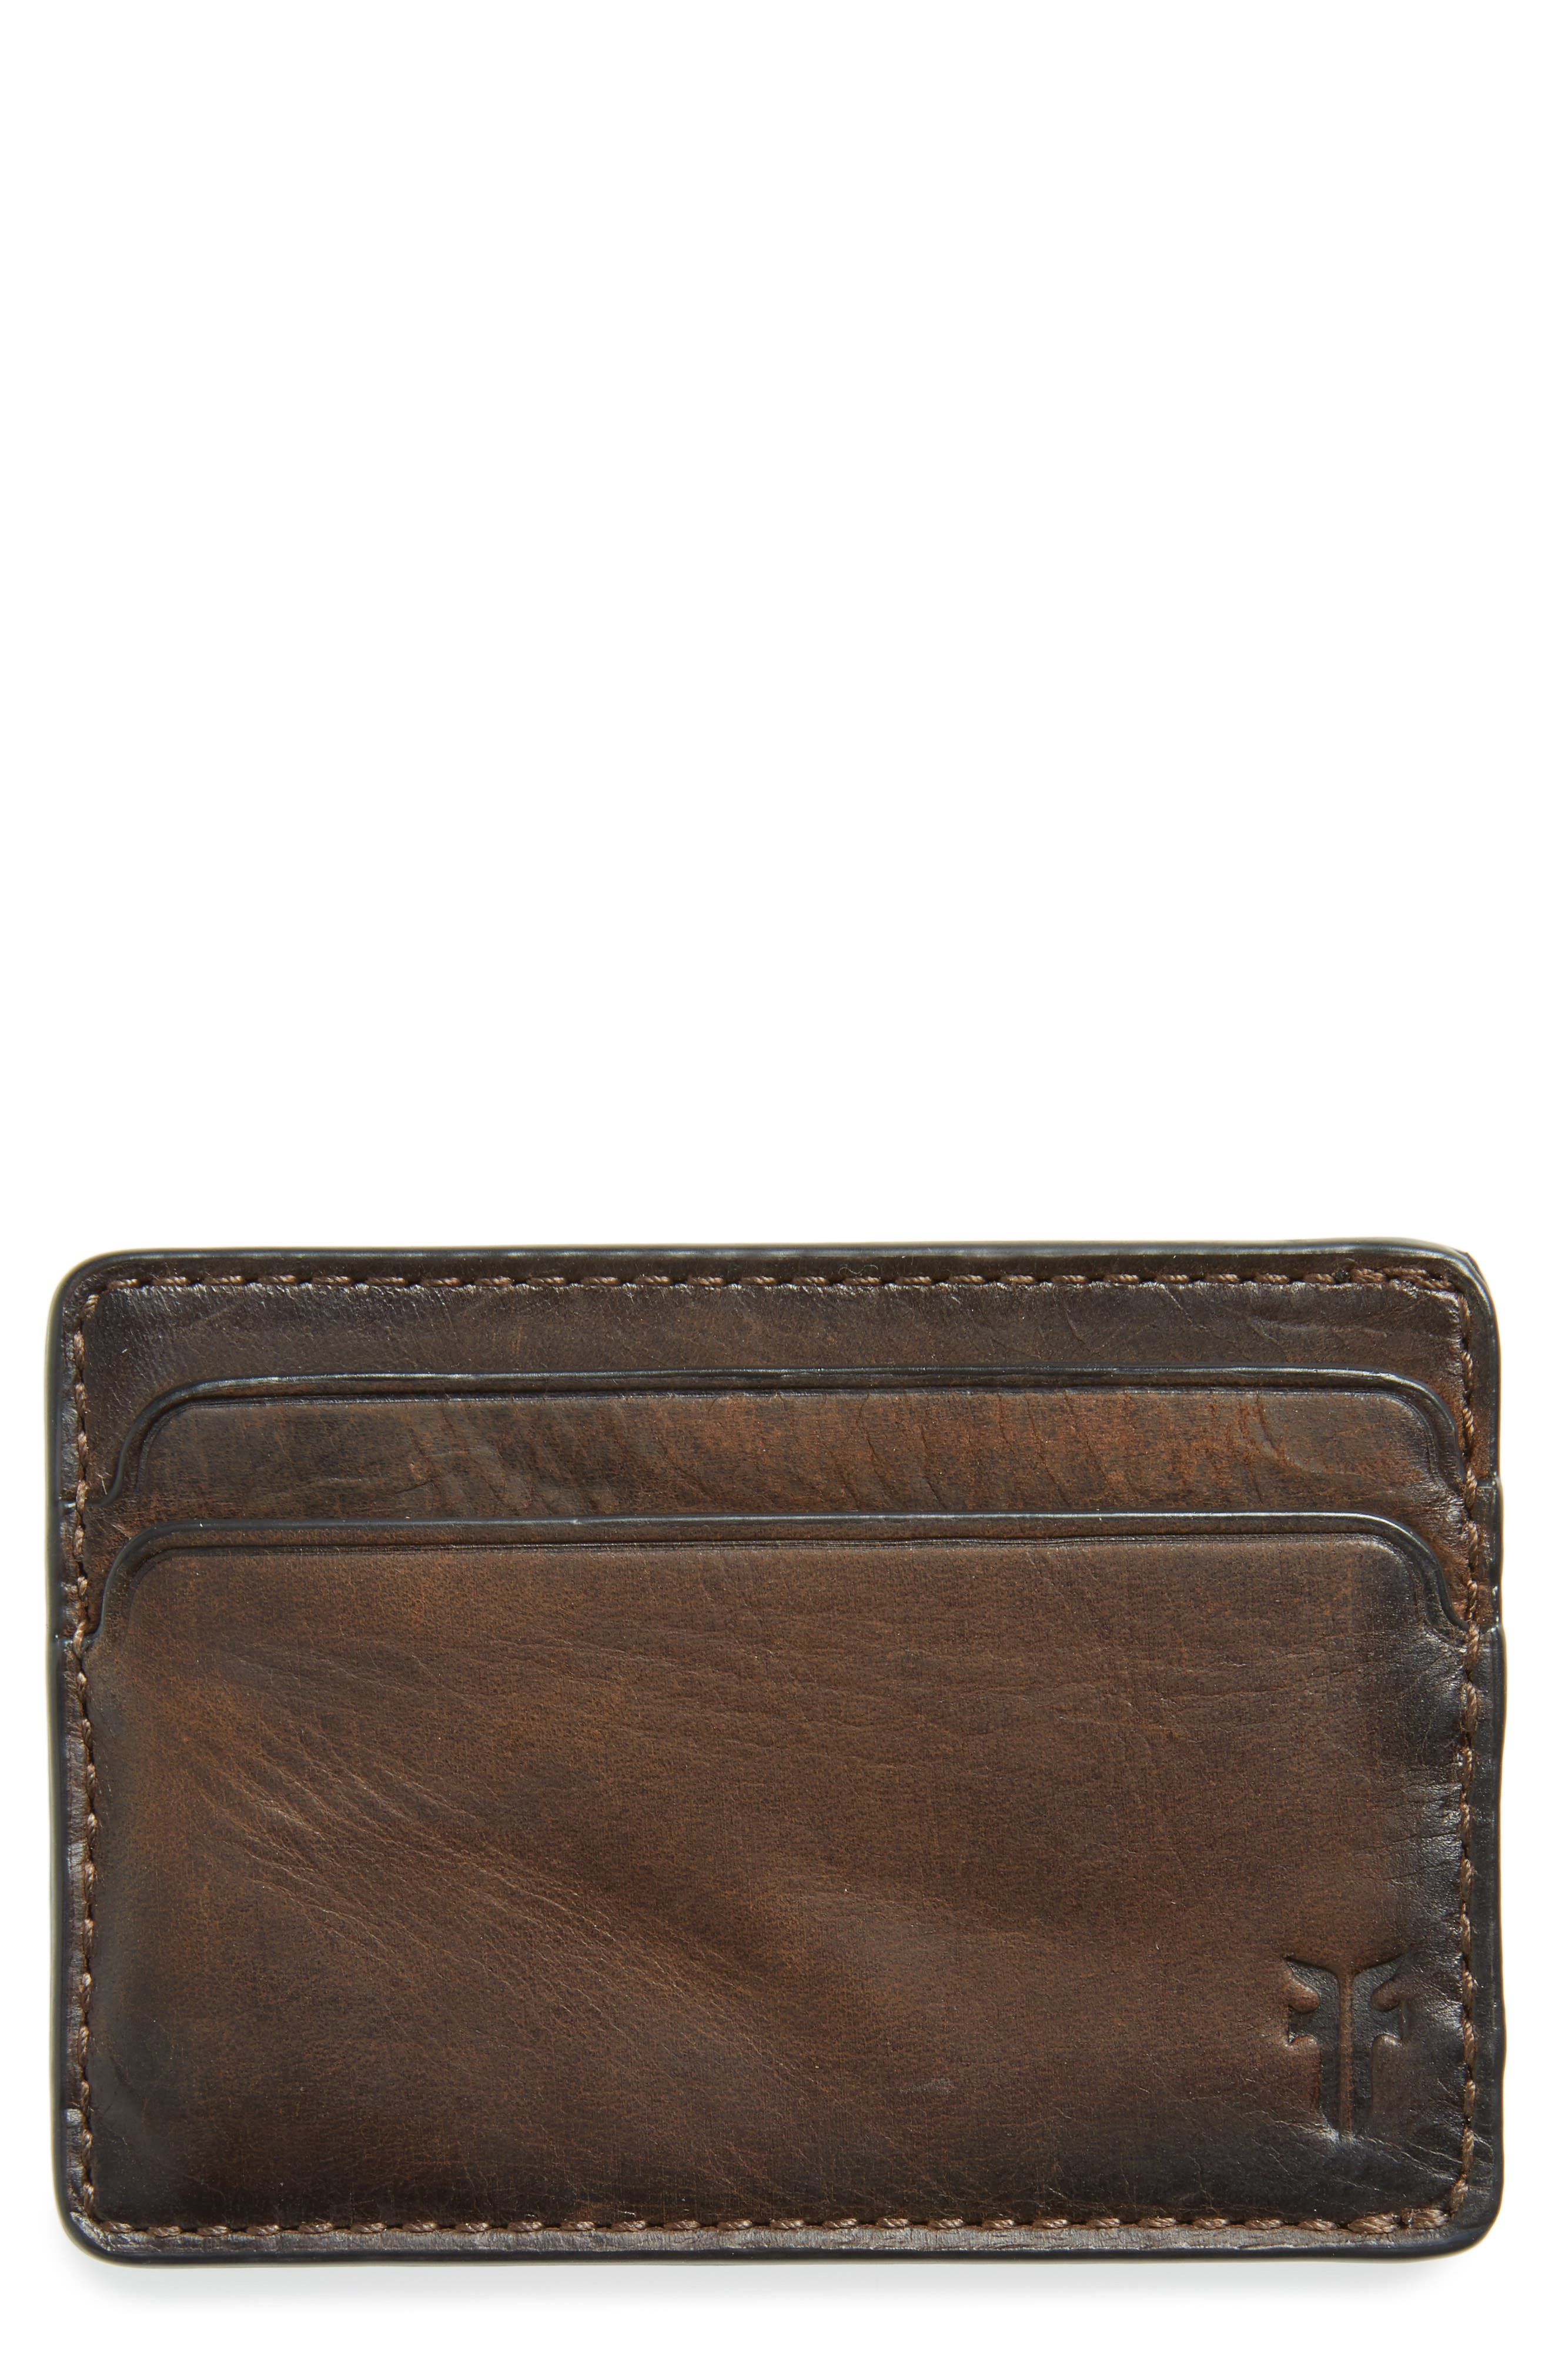 Oliver Leather Card Case,                             Main thumbnail 1, color,                             Dark Brown